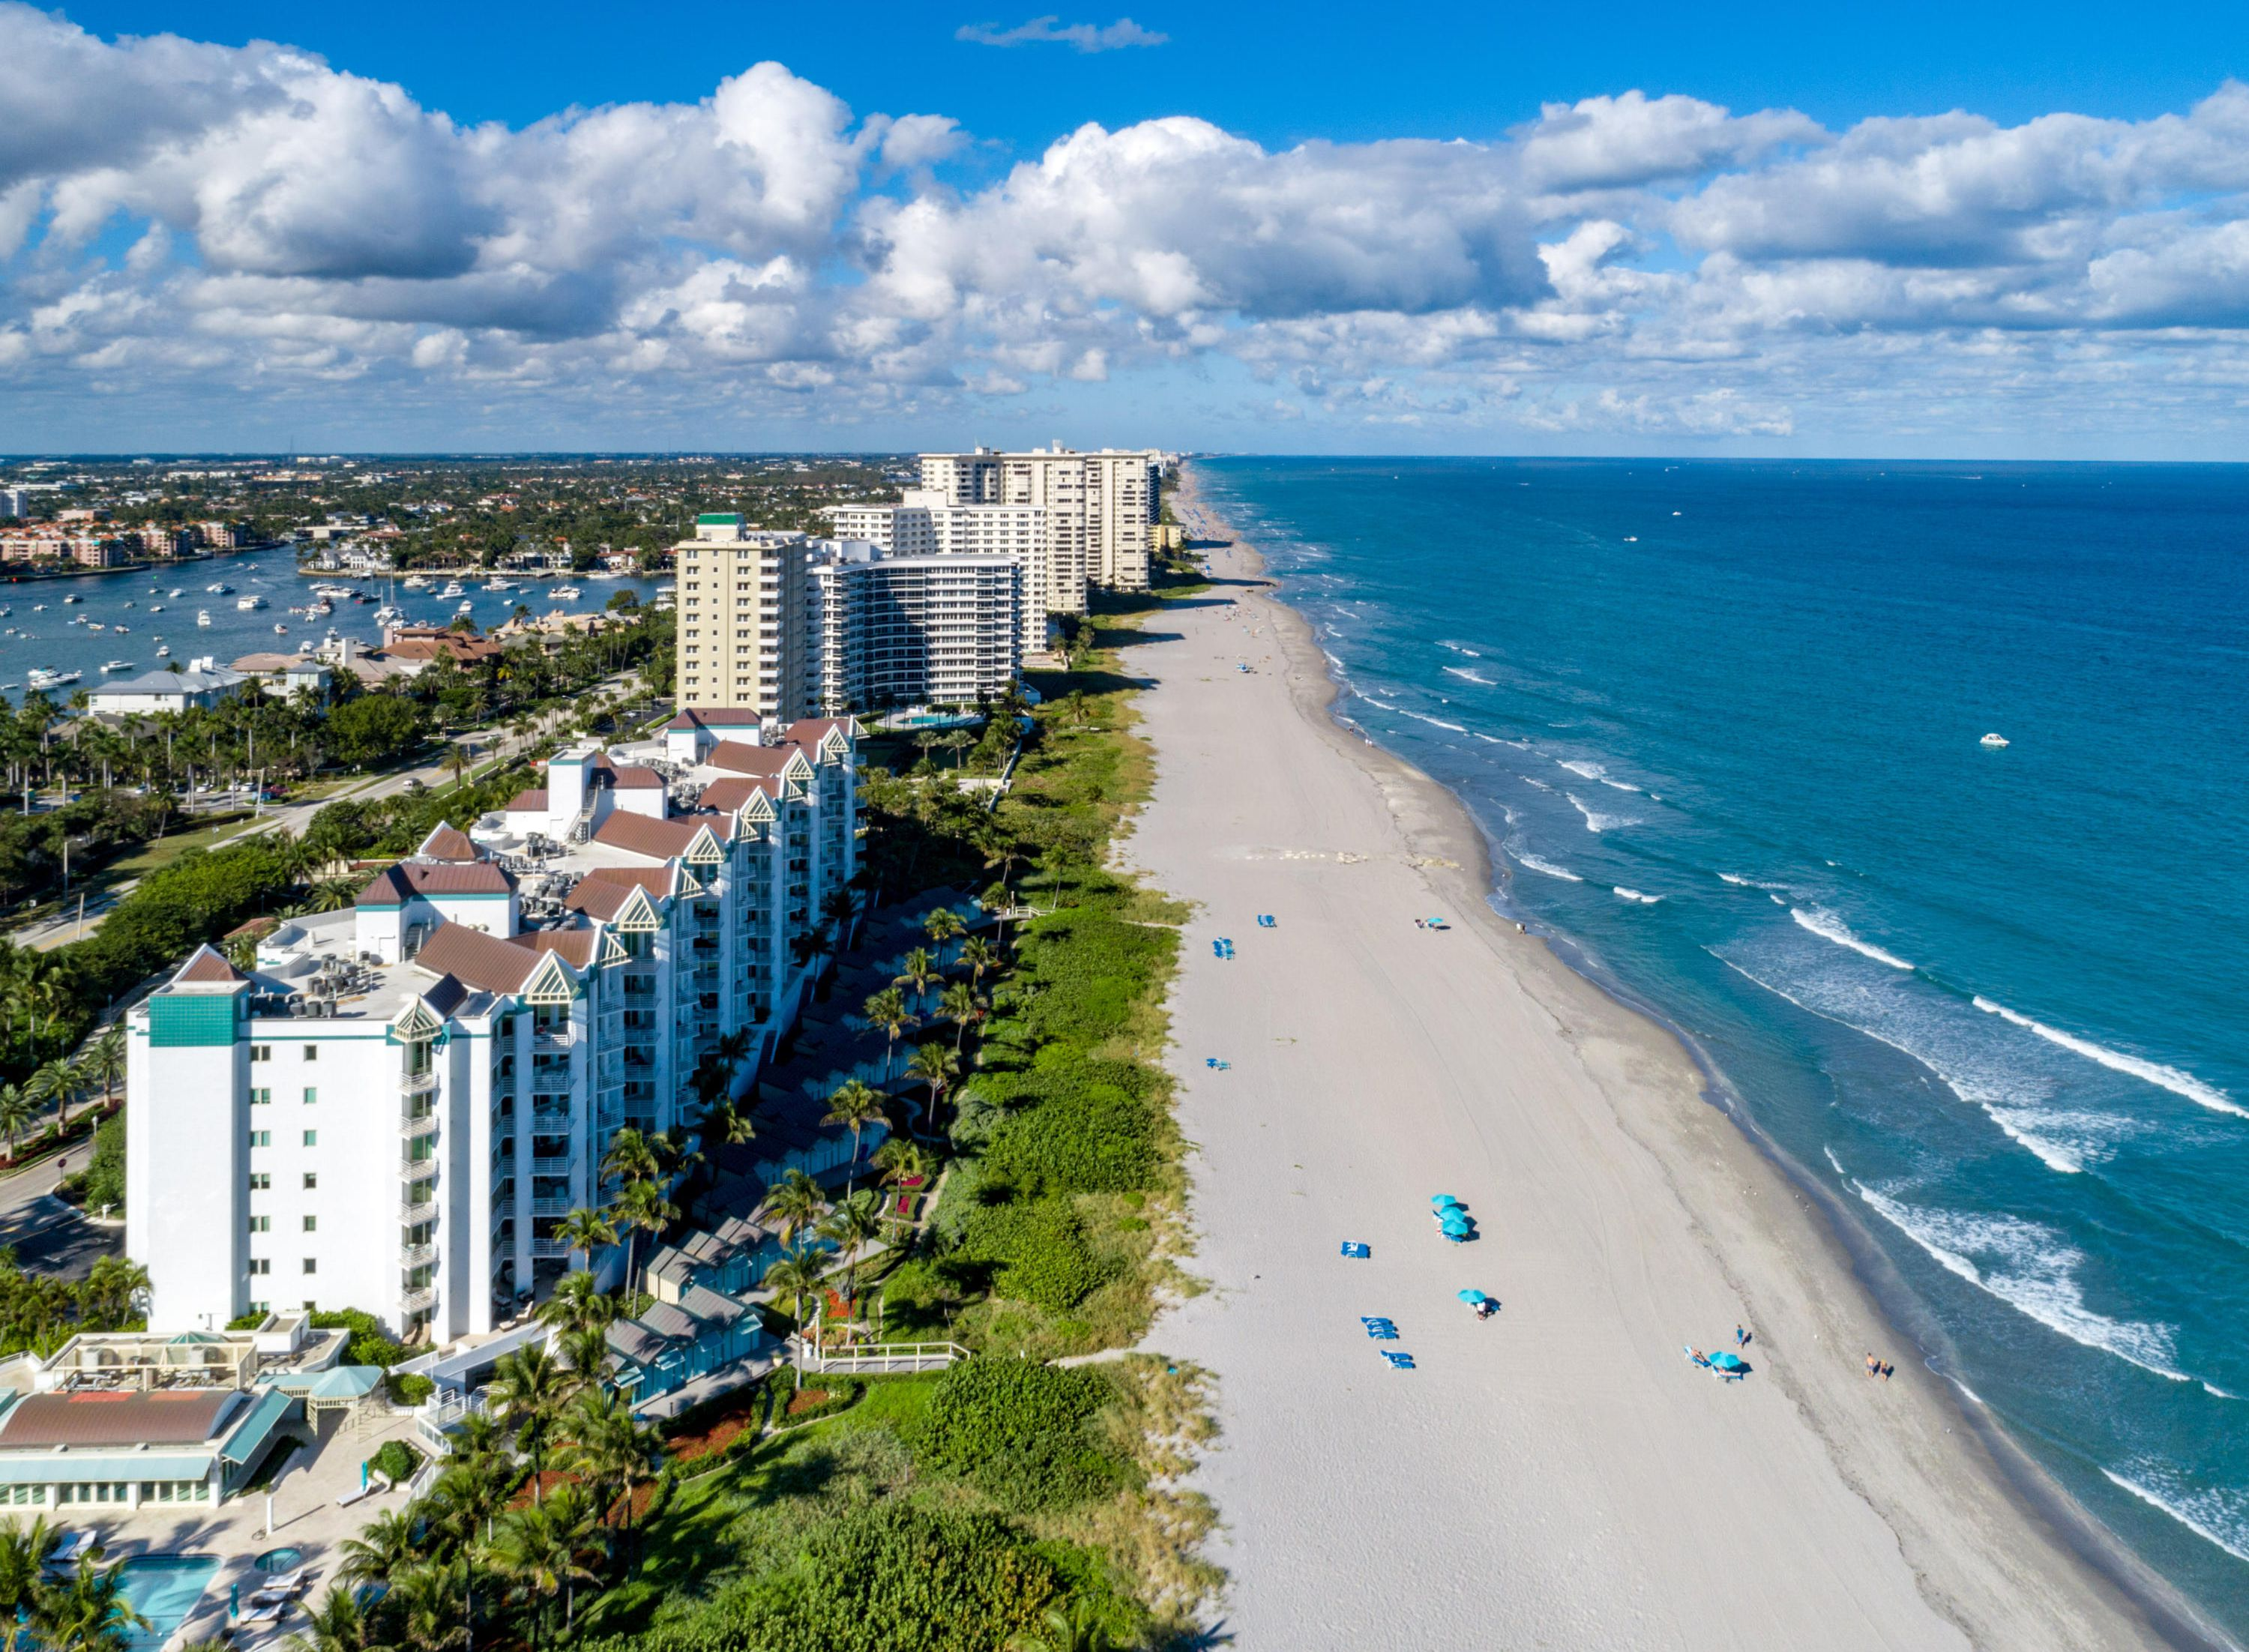 BOCA RATON PALM BEACH CONDOS FOR SALE AND FOR RENT